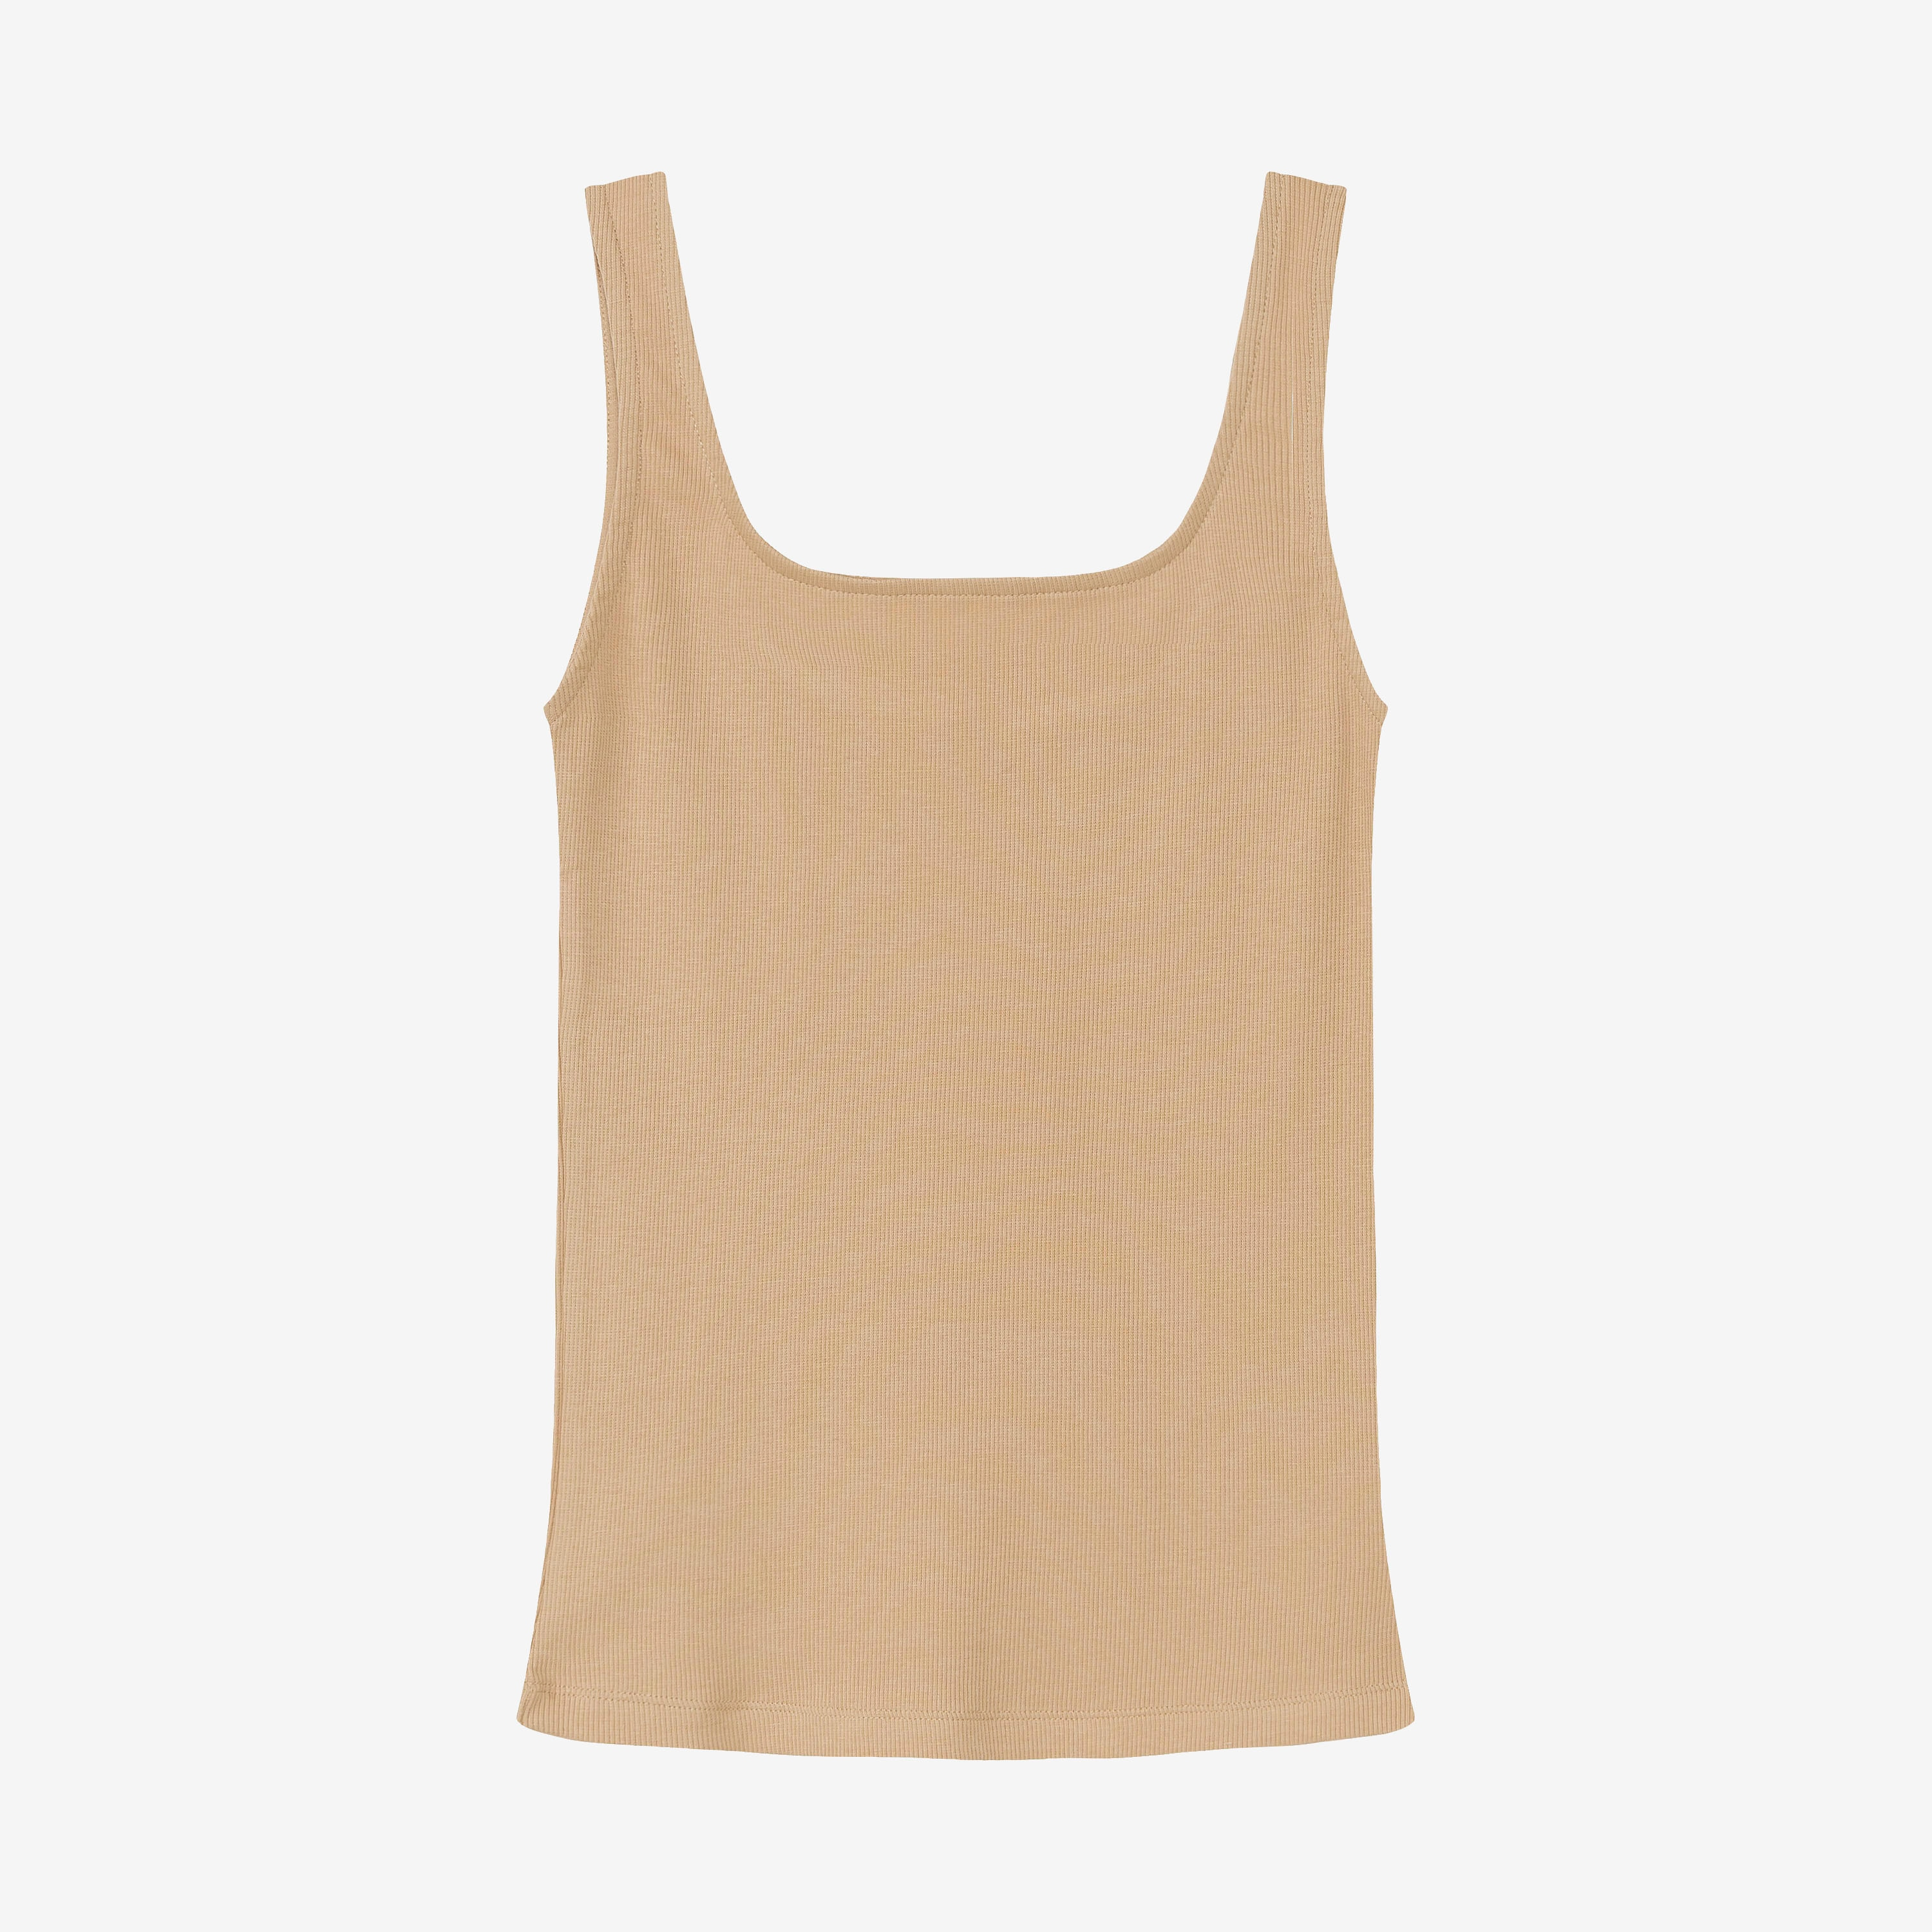 632-05_Tank_ribbed_beige_CO-A